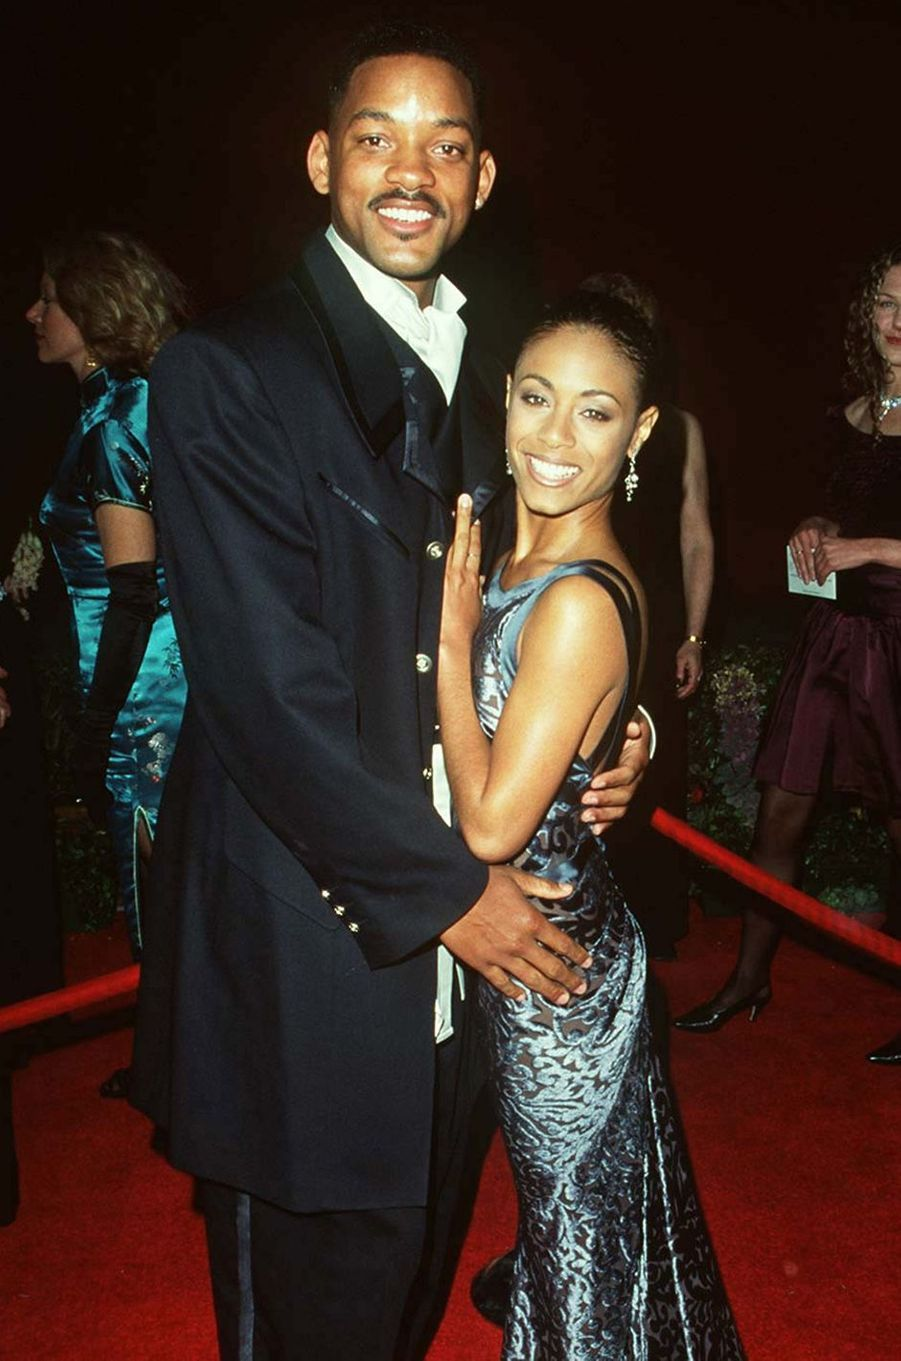 Will Smith et Jada Pinkett Smith - ici en mars 1996 aux Oscars à Los Angeles